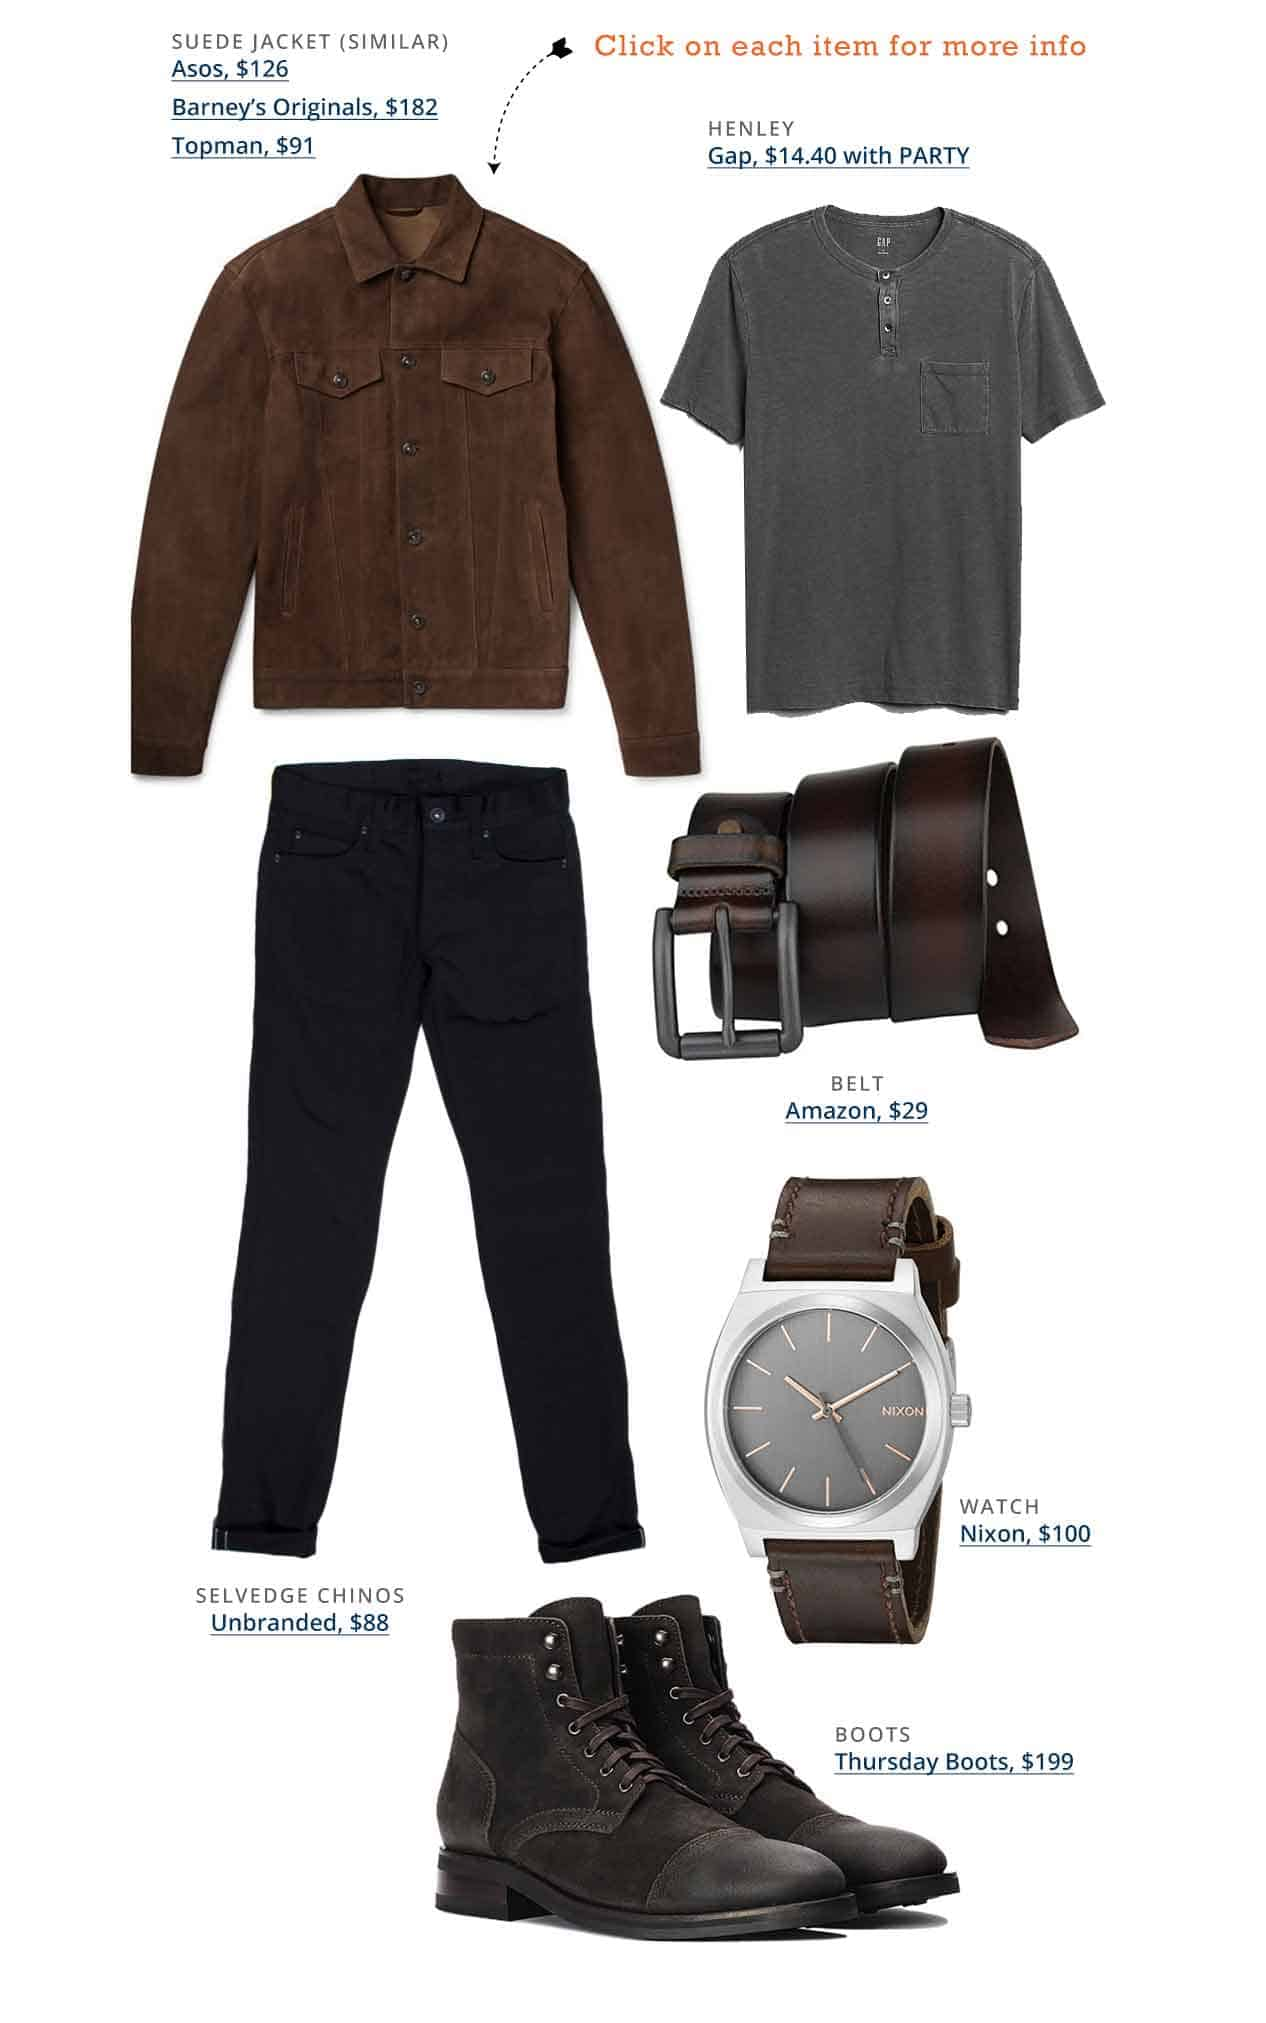 Han solo outfit inspiration brown jacket, gray henley, black jeans